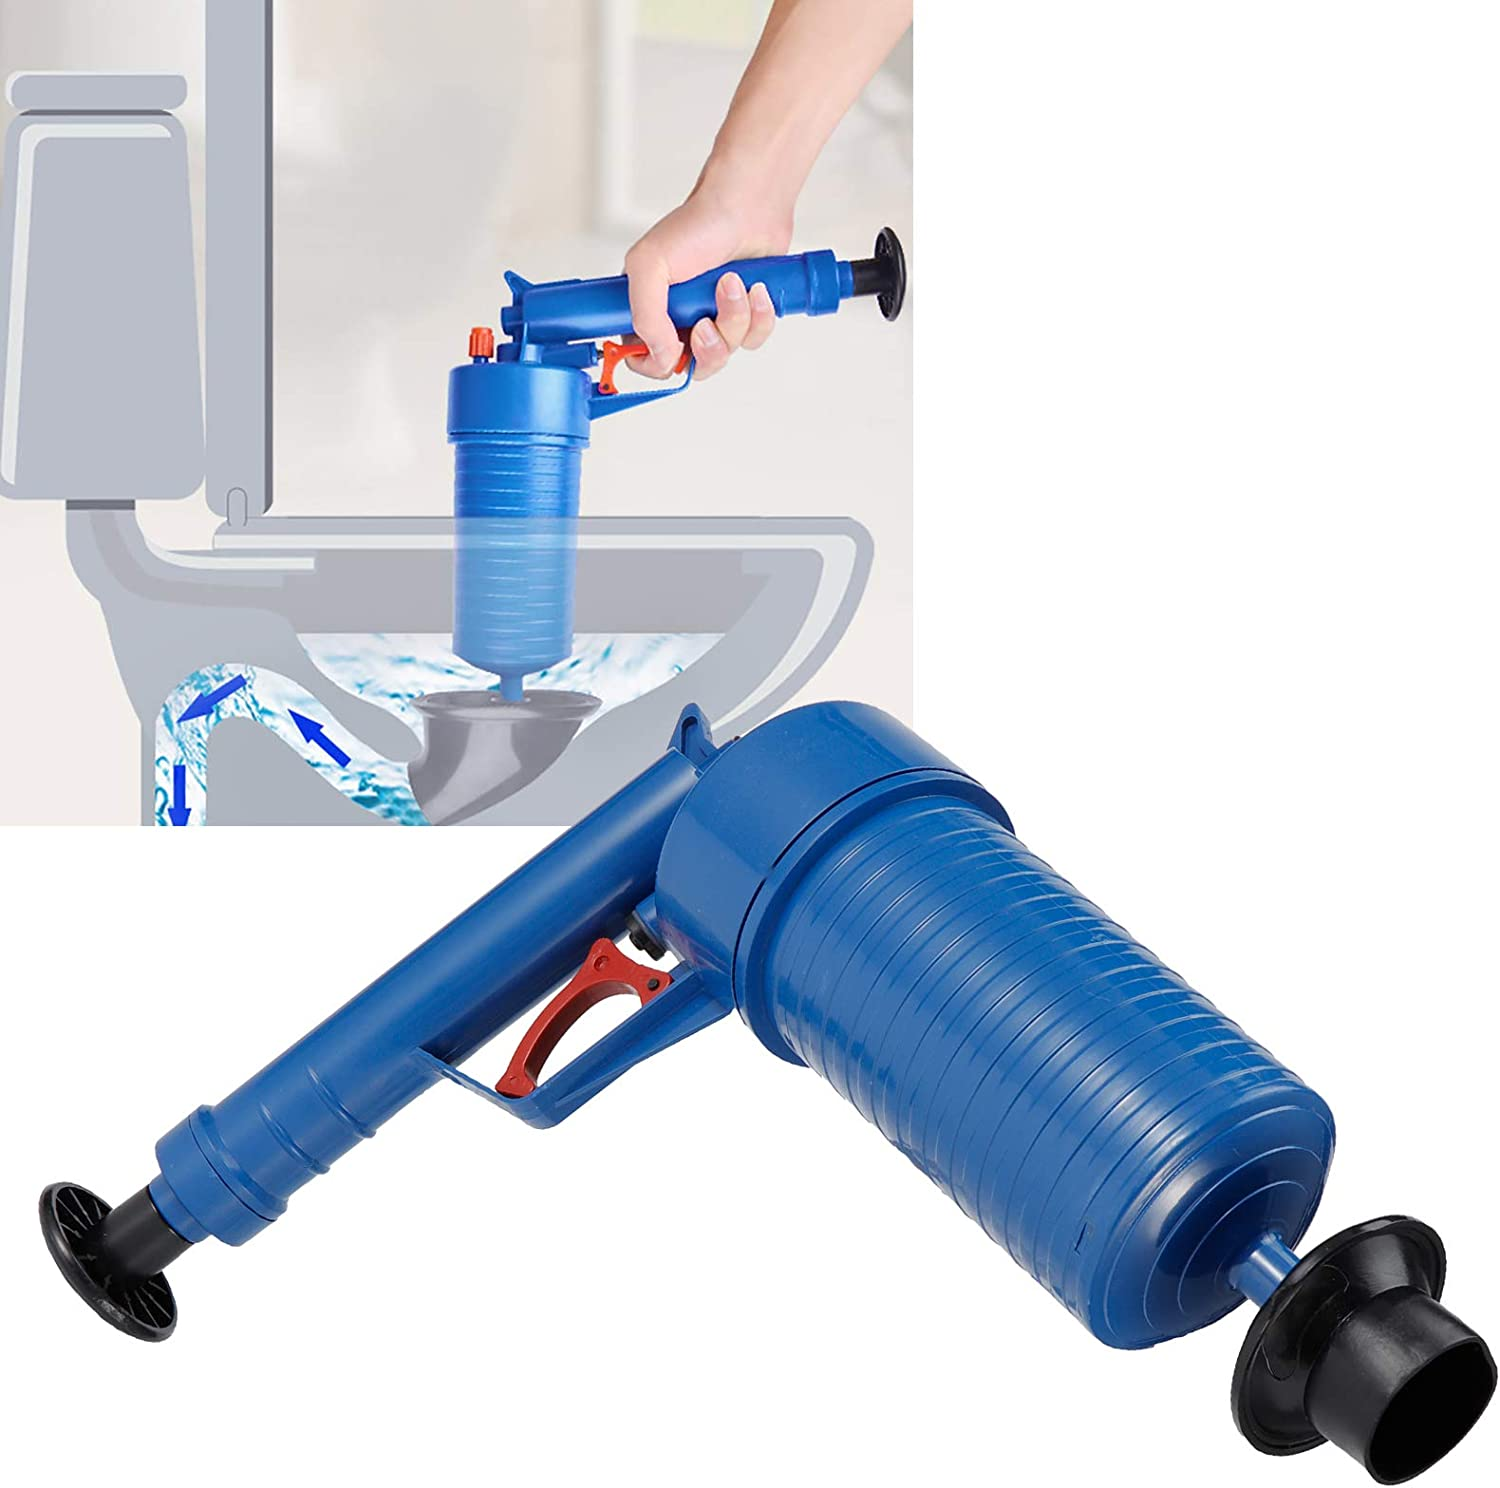 Manual Practical Anti‑Shallow Blue for Bathroom Clogged Pipe Kitchen FOTABPYTI Clog Remover Pipe Plunger